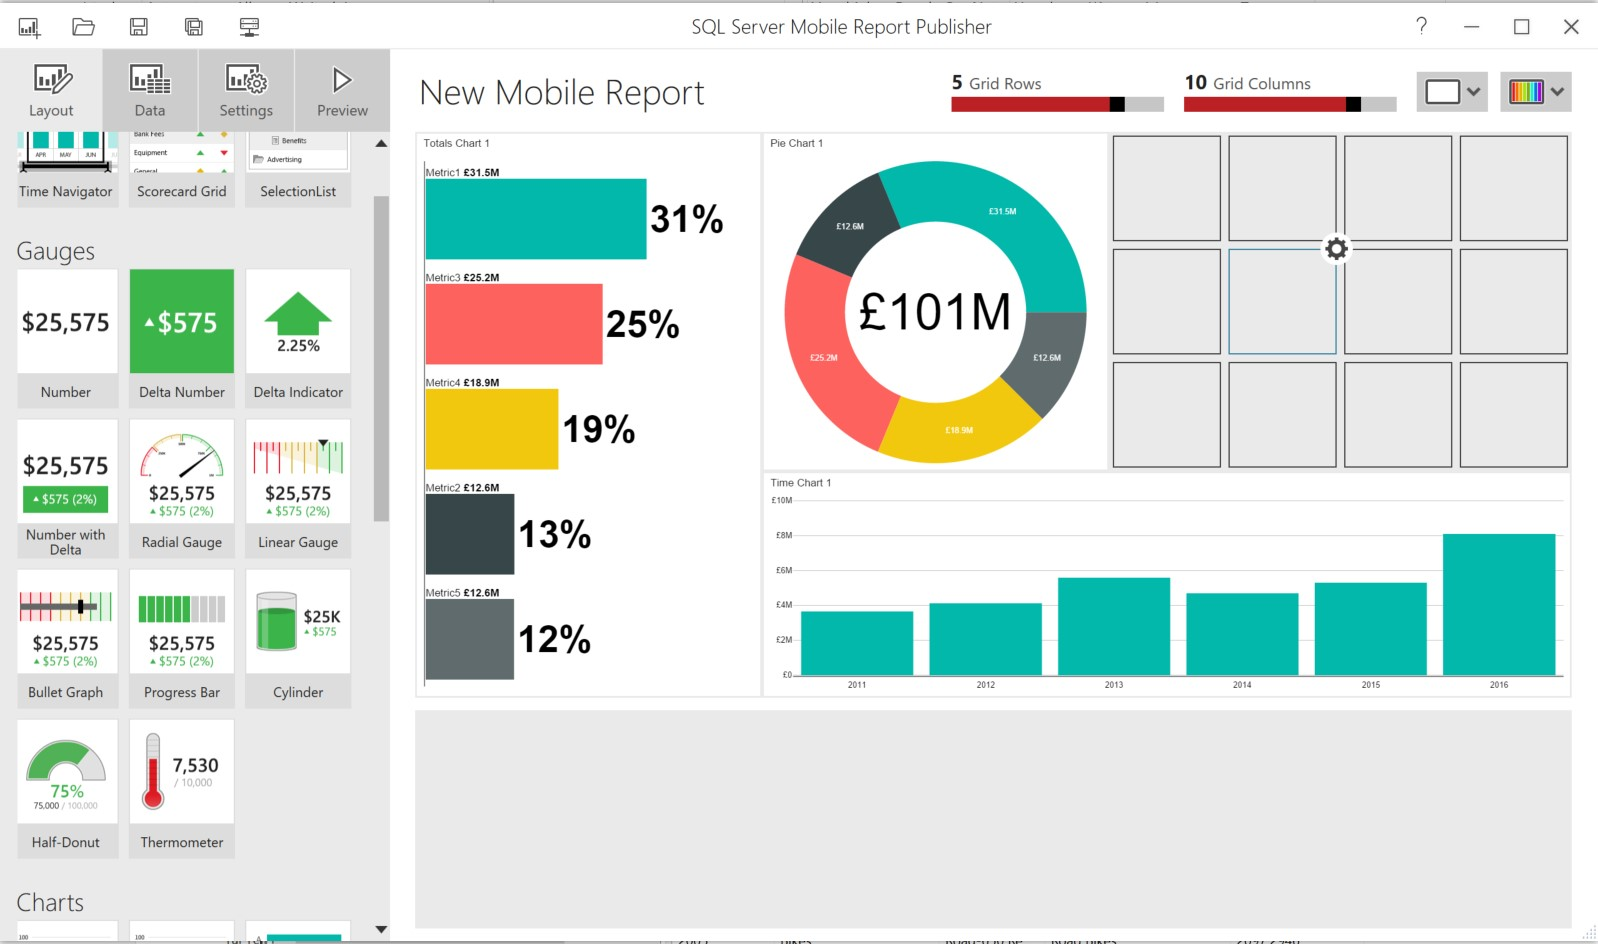 Abbildung 7: SQL Server Mobile Report Publisher